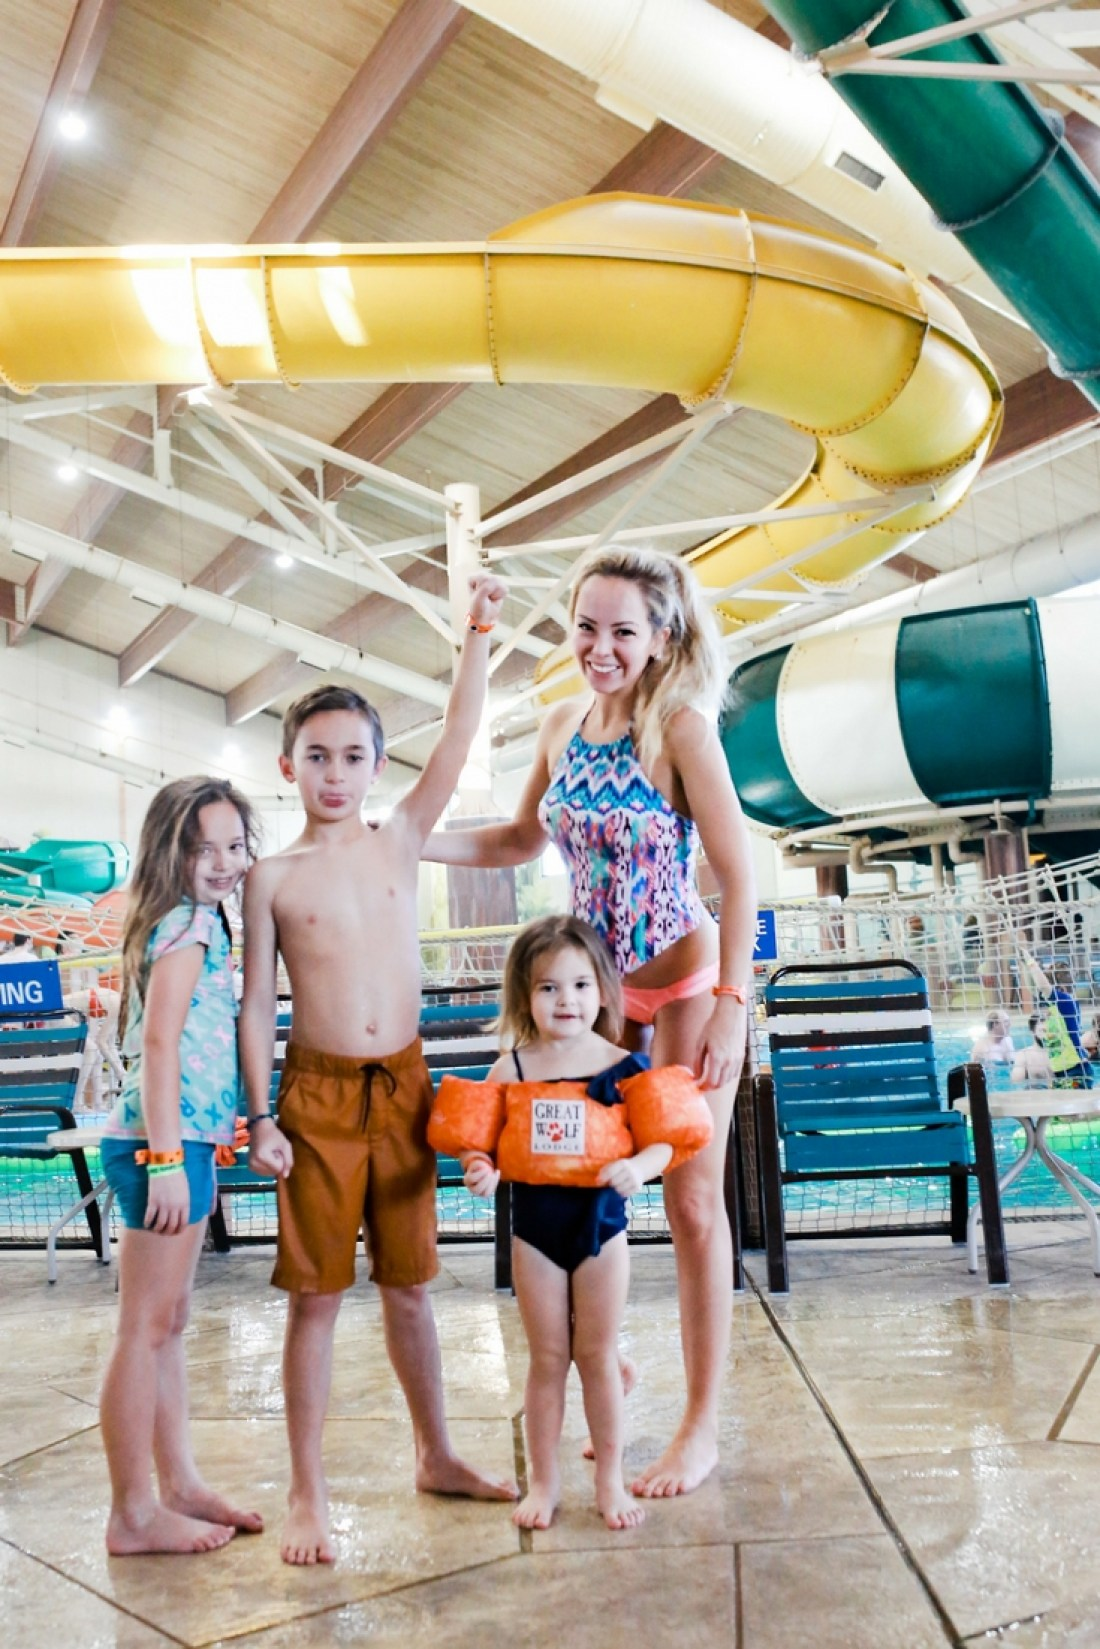 An honest review with tips and tricks for a great stay at The Great Wolf Lodge. Including video of the waterpark and other fun kid activities offered!